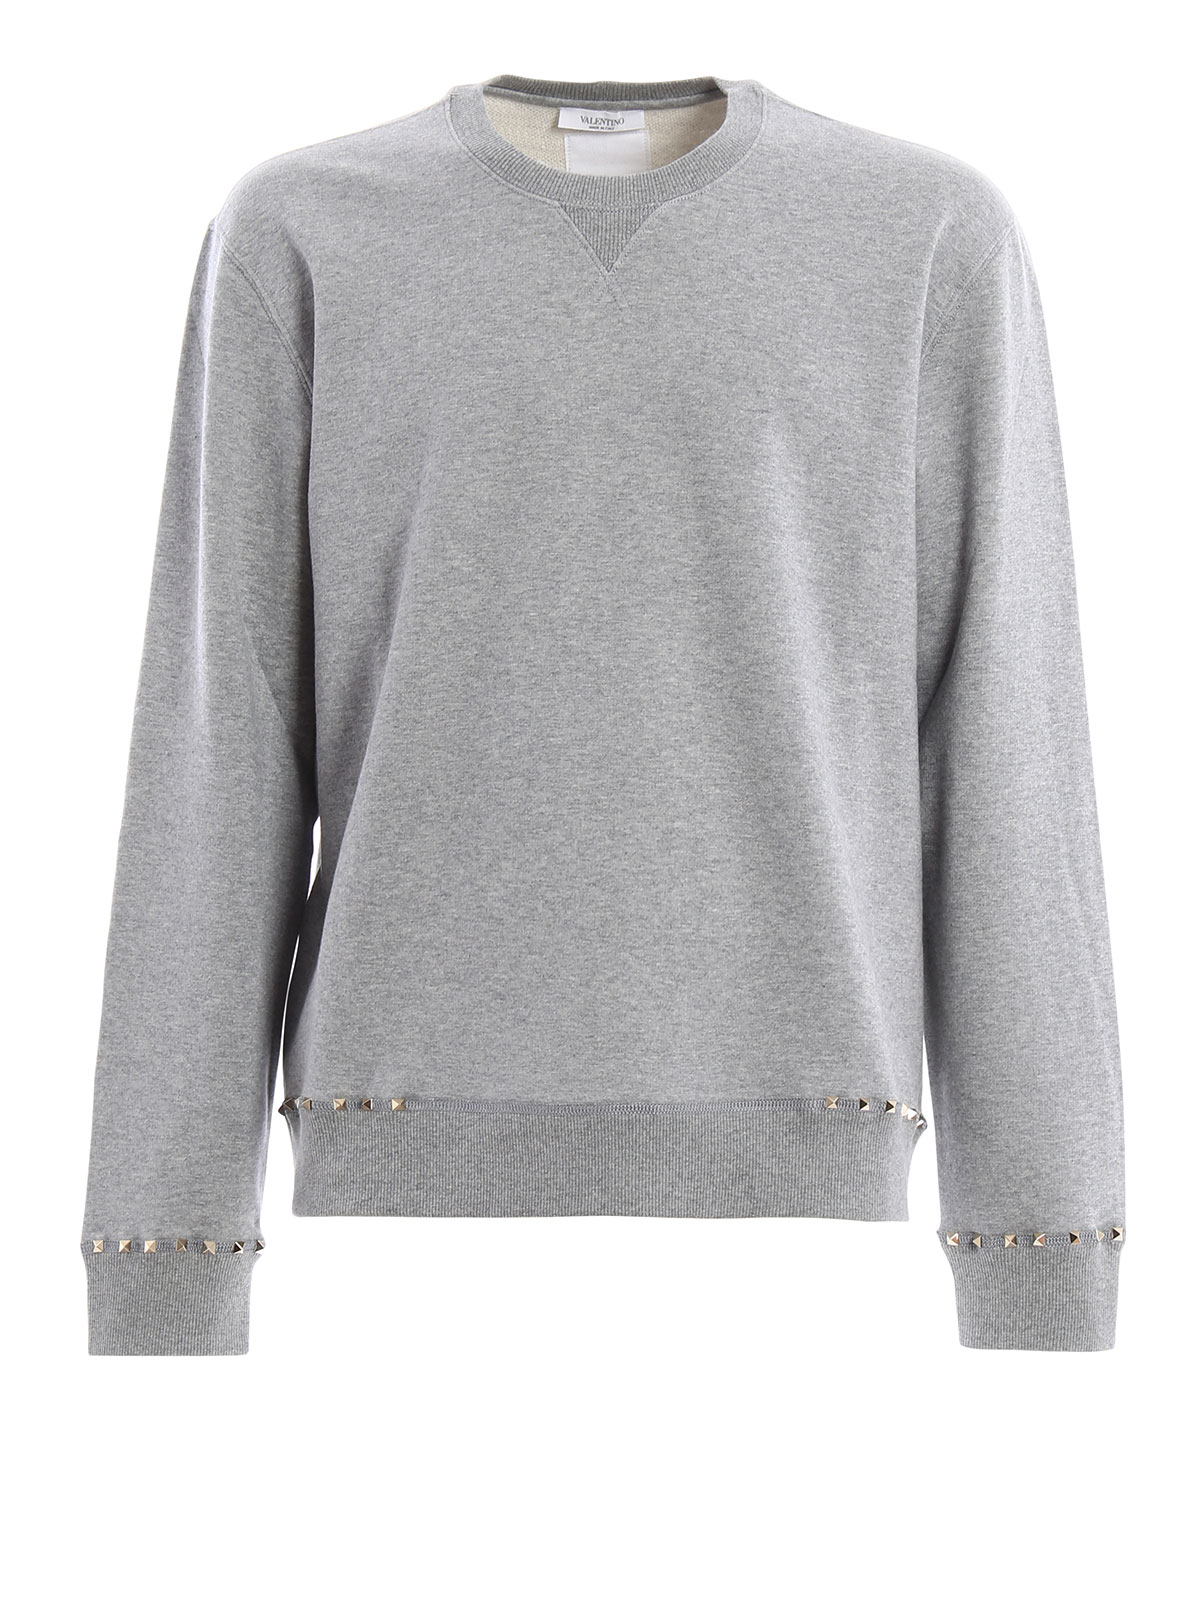 Rockstud sweatshirt - Grey Valentino Outlet With Paypal Order Clearance 2018 New Xhjr1wud3